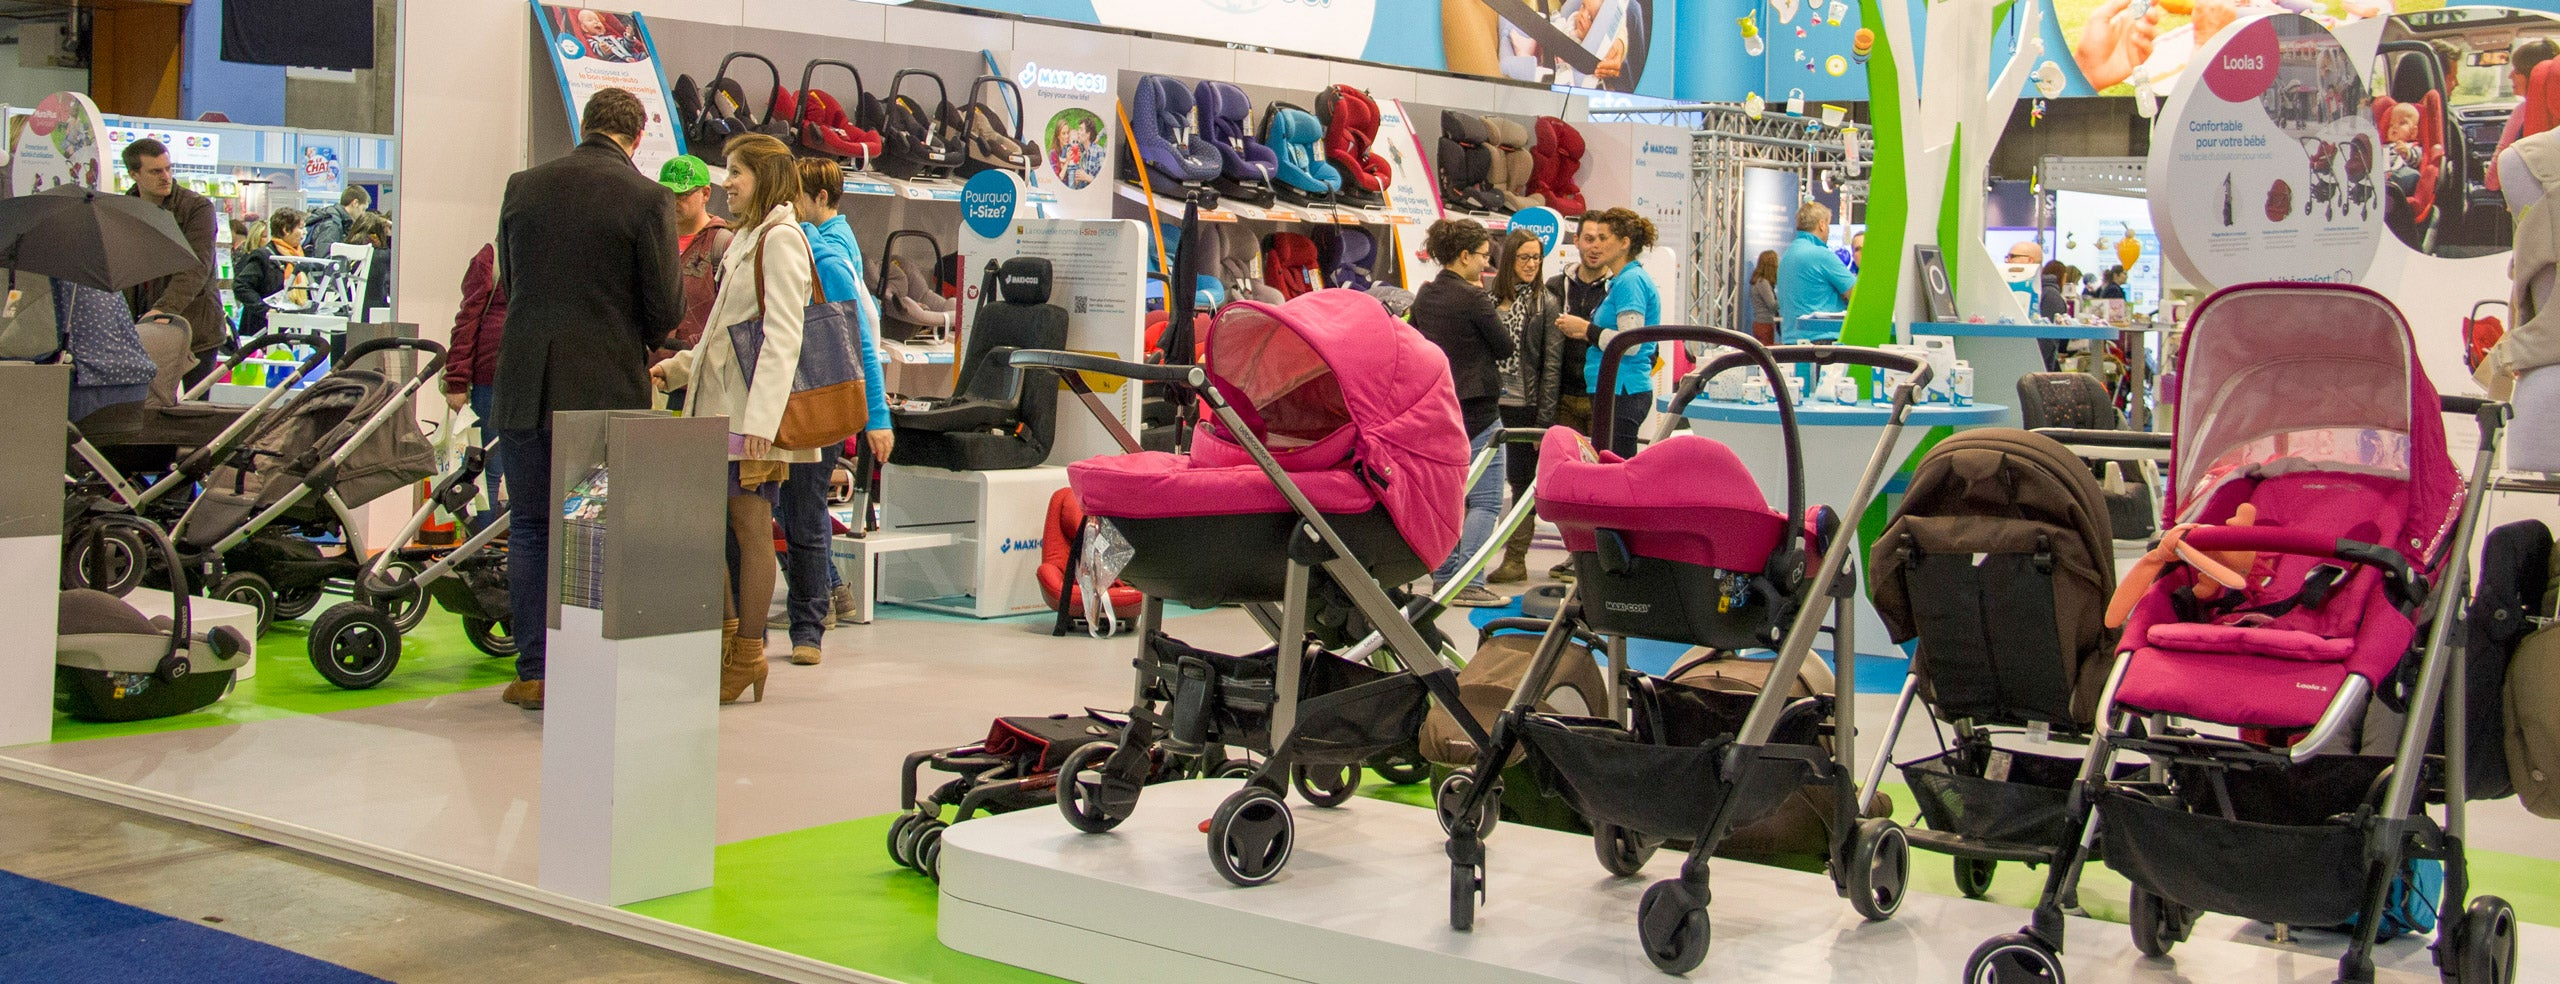 Le Salon Du Bébé Babyboom Welcome To Brussels Expo